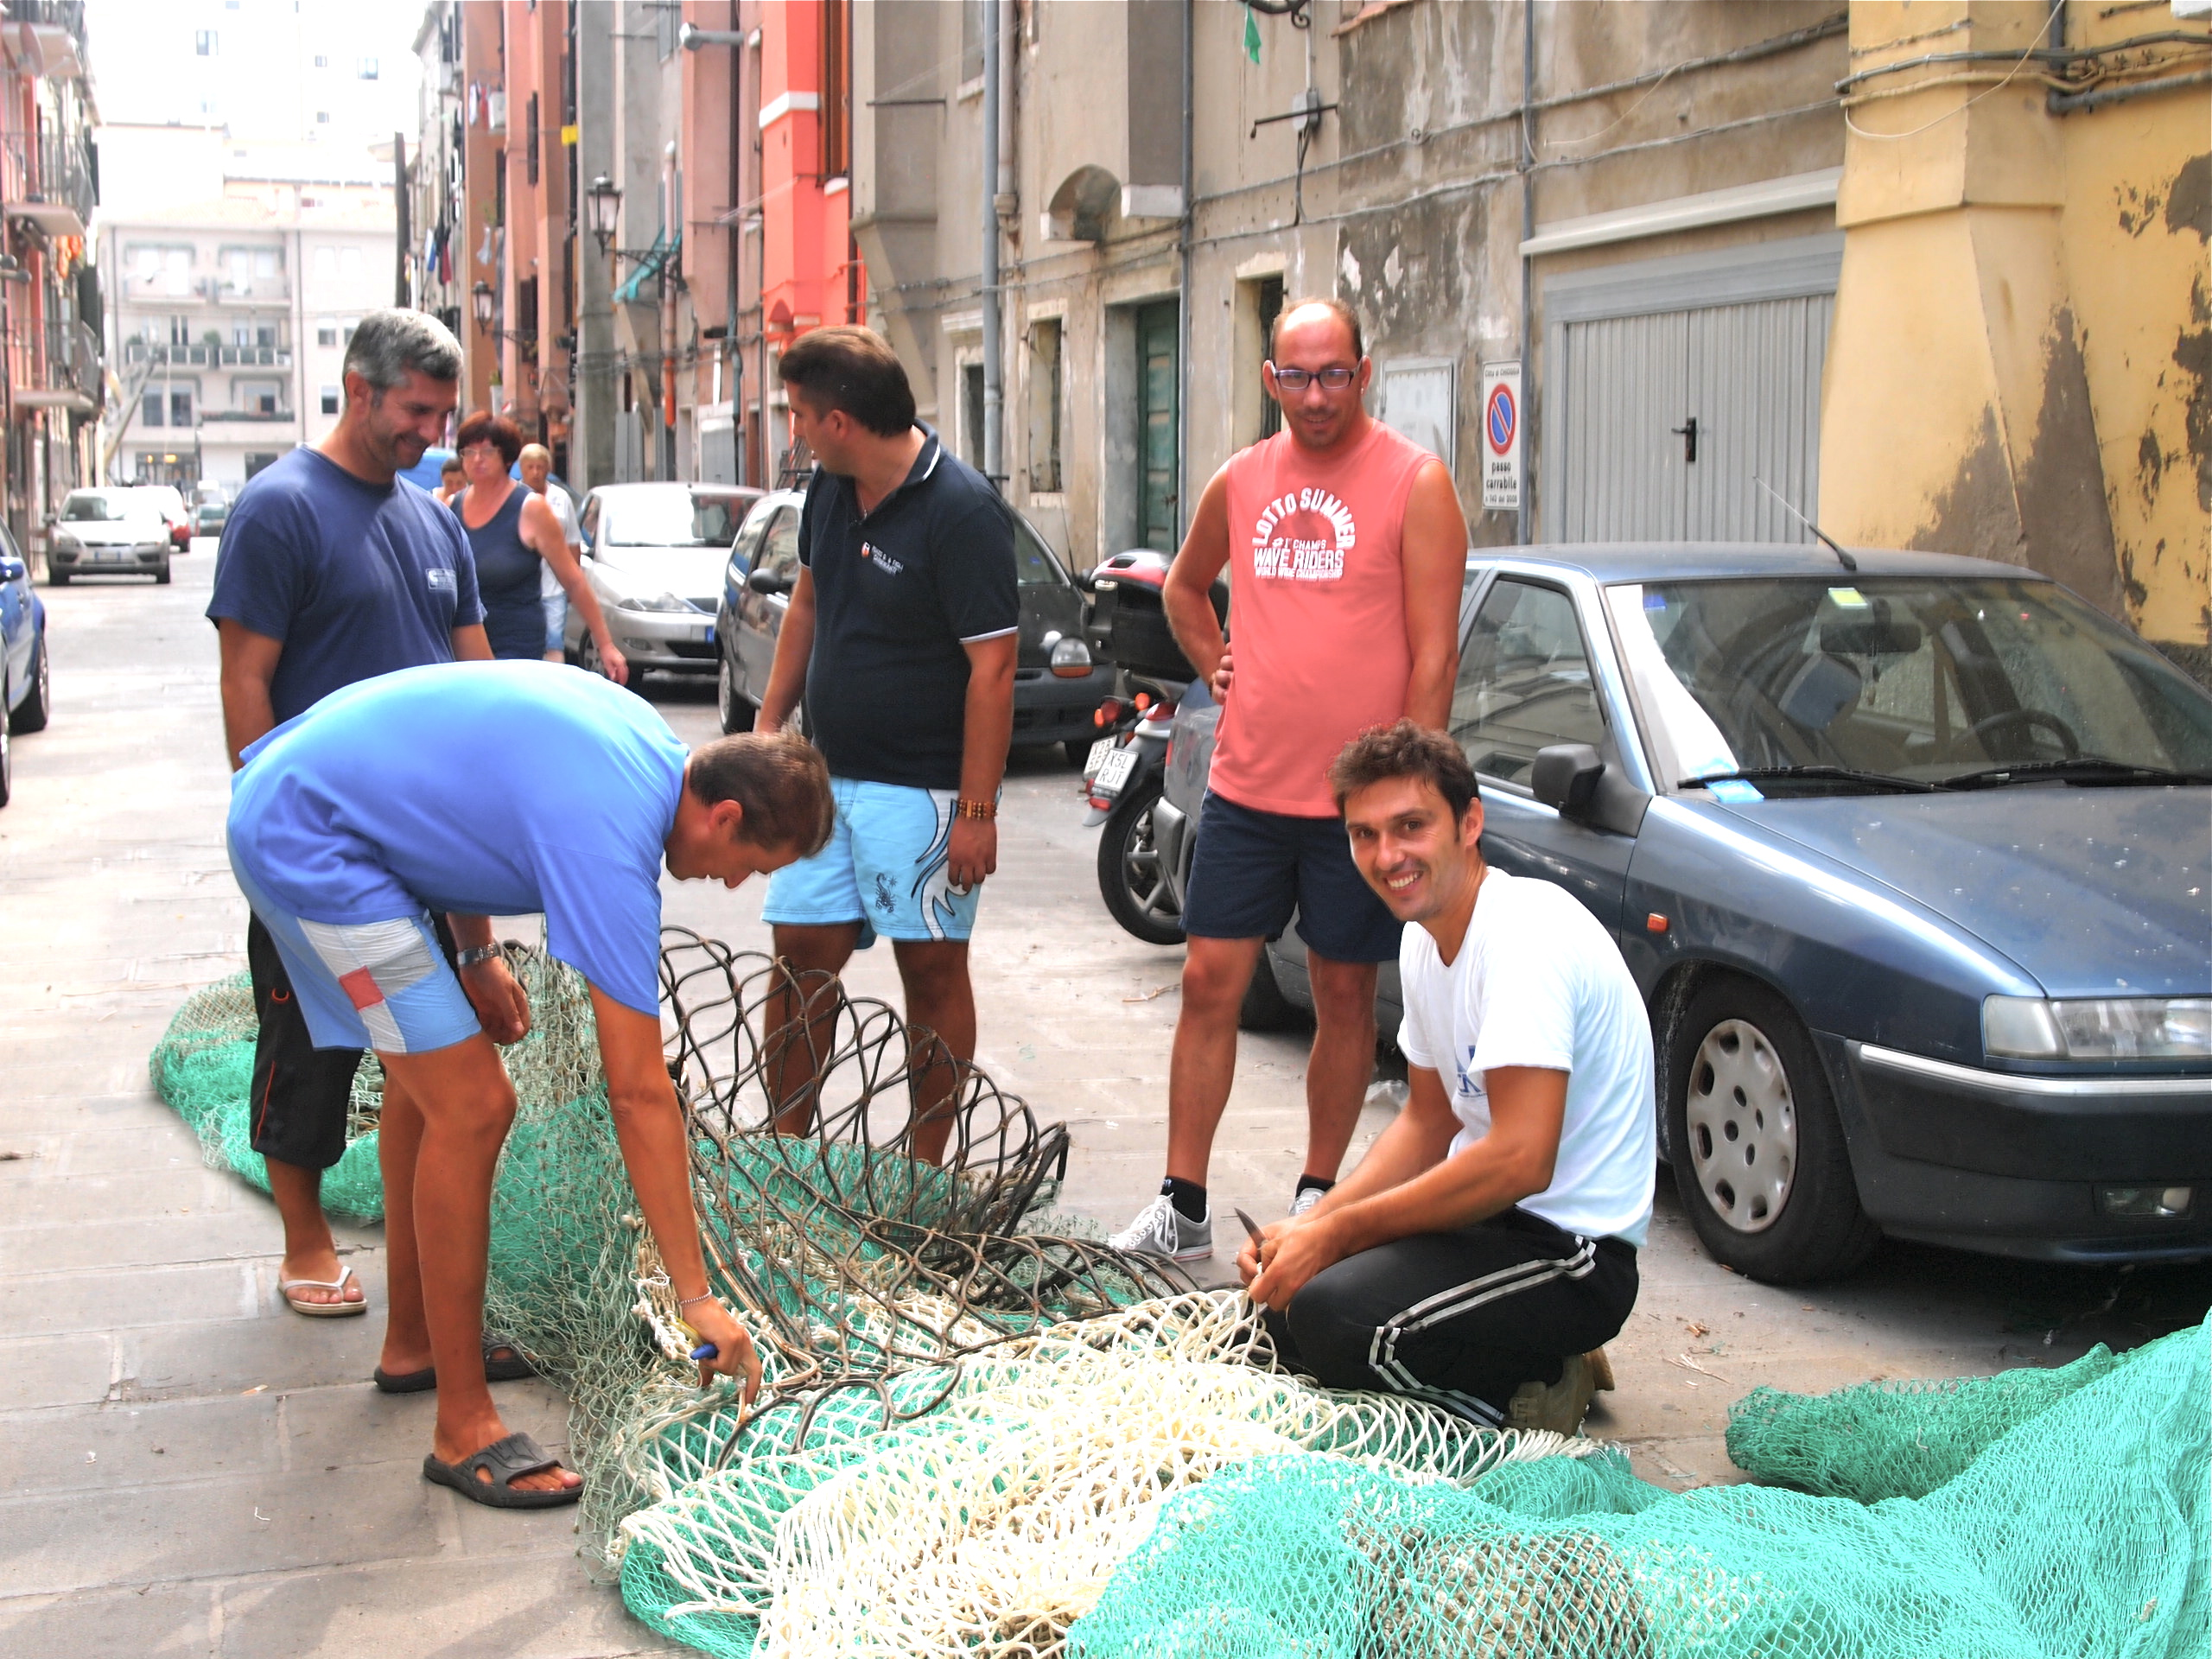 Fishermen checking fishing net